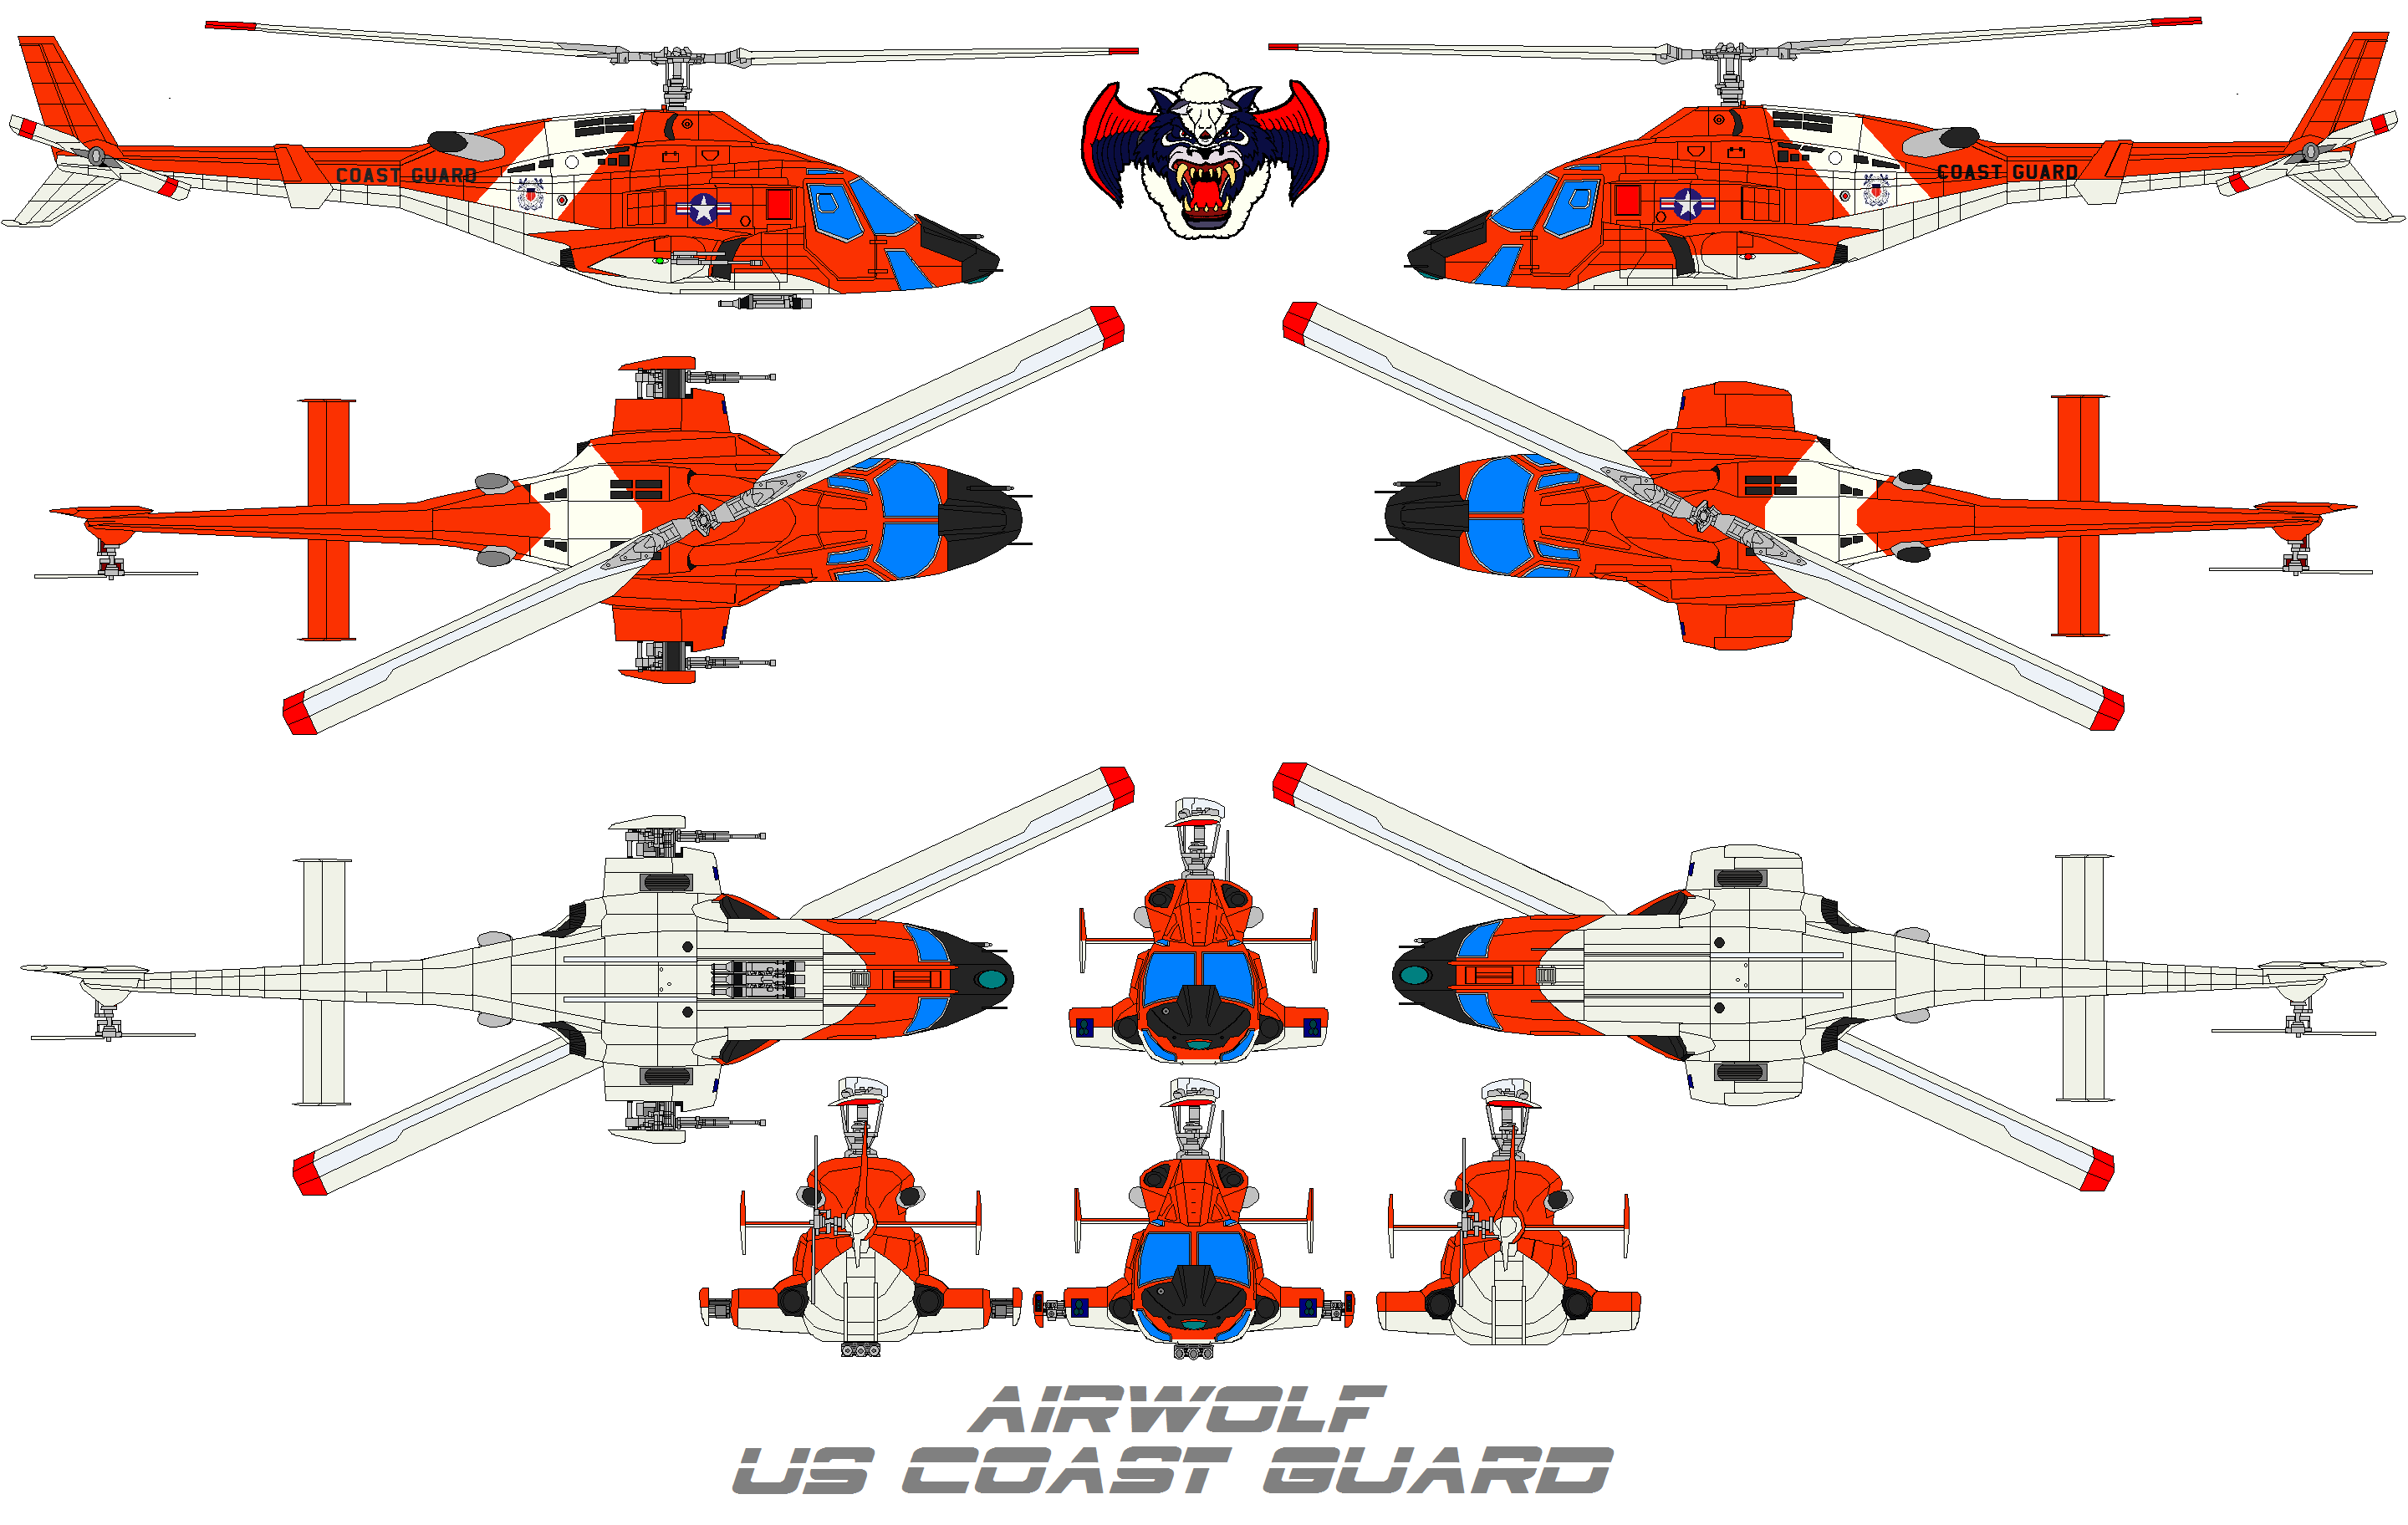 AIRWOLF US Coast Guard by bagera3005